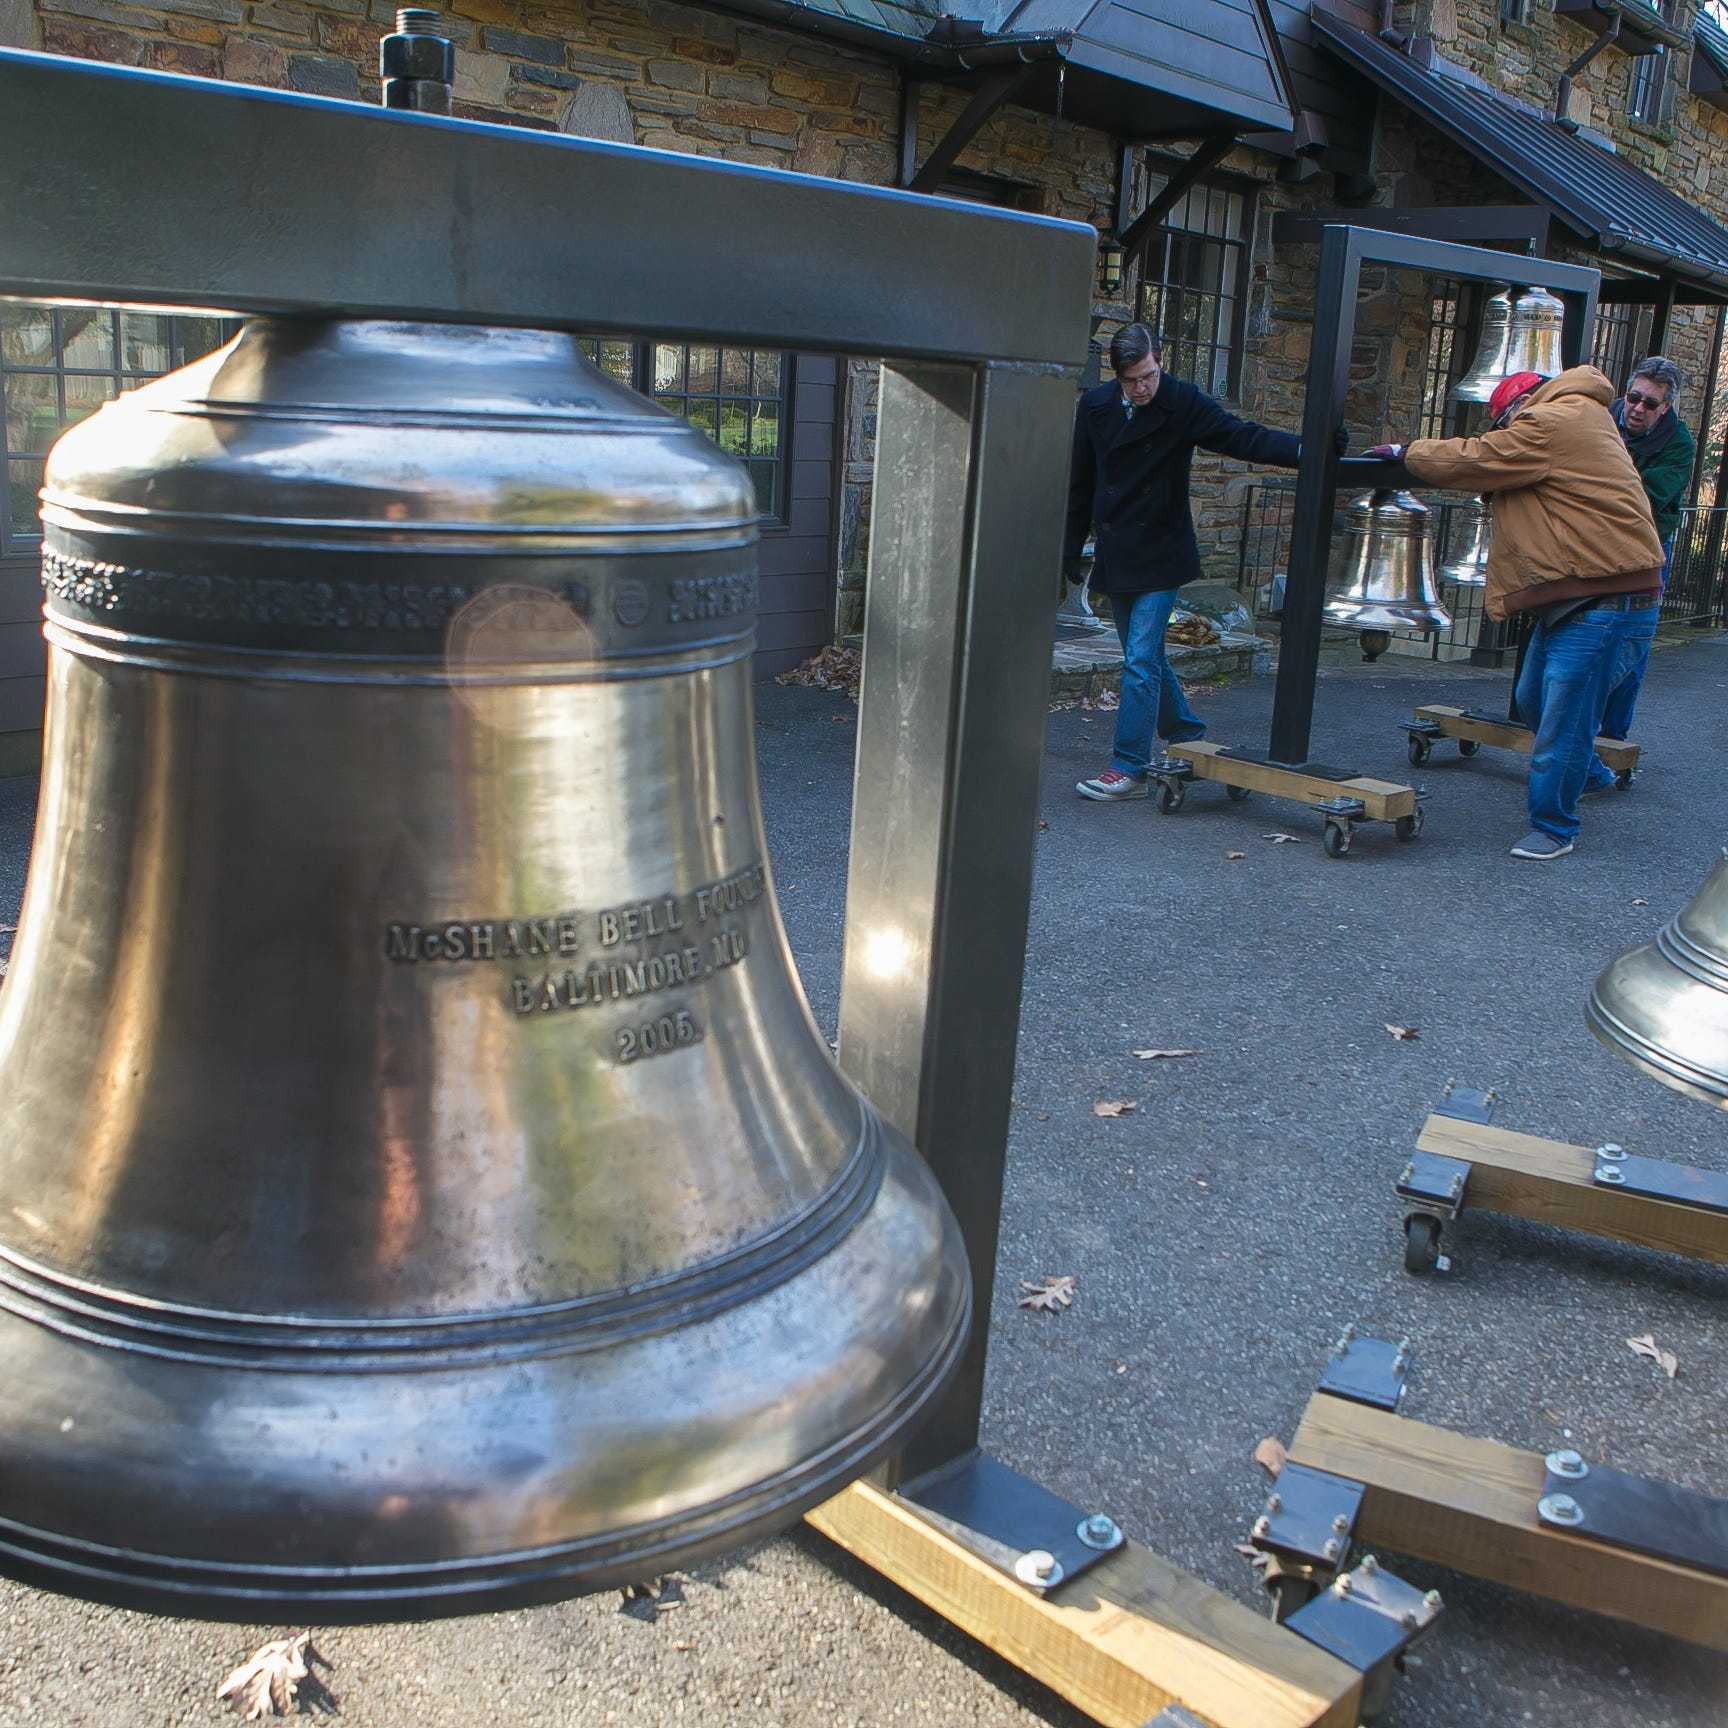 Conductor David Amado's unique way of ringing in holidays. He parked giant bells in garage